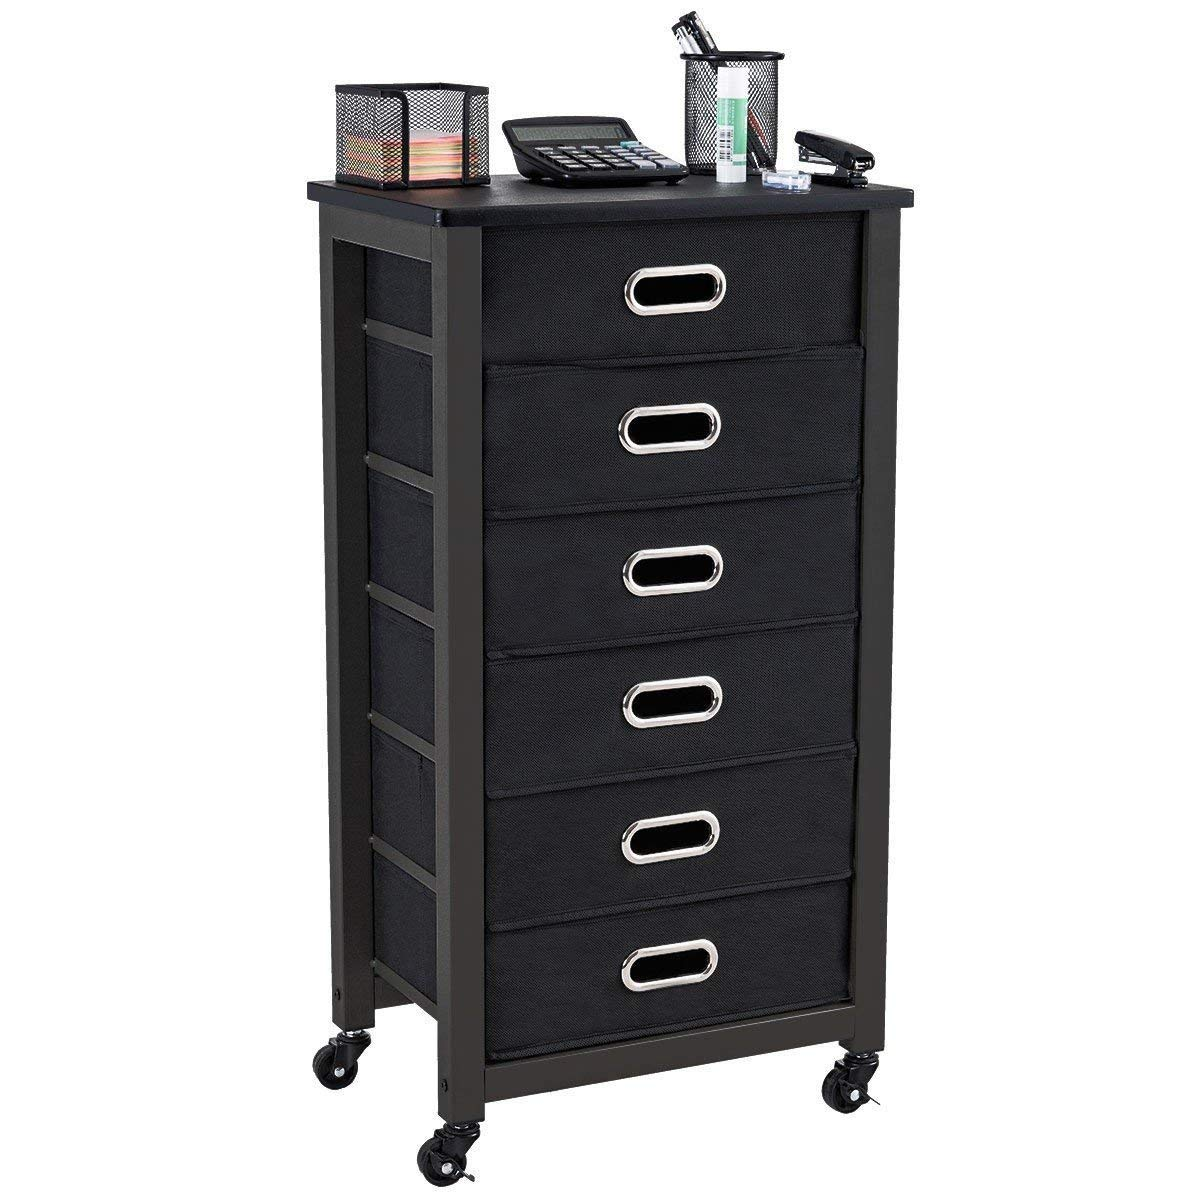 Heavy Duty Rolling Mobile Storage Filing Cabinet w/ 6 Drawers Cabinet Storage Filing Office Drawer File Home Metal Organizer Furniture BeUniqueToday